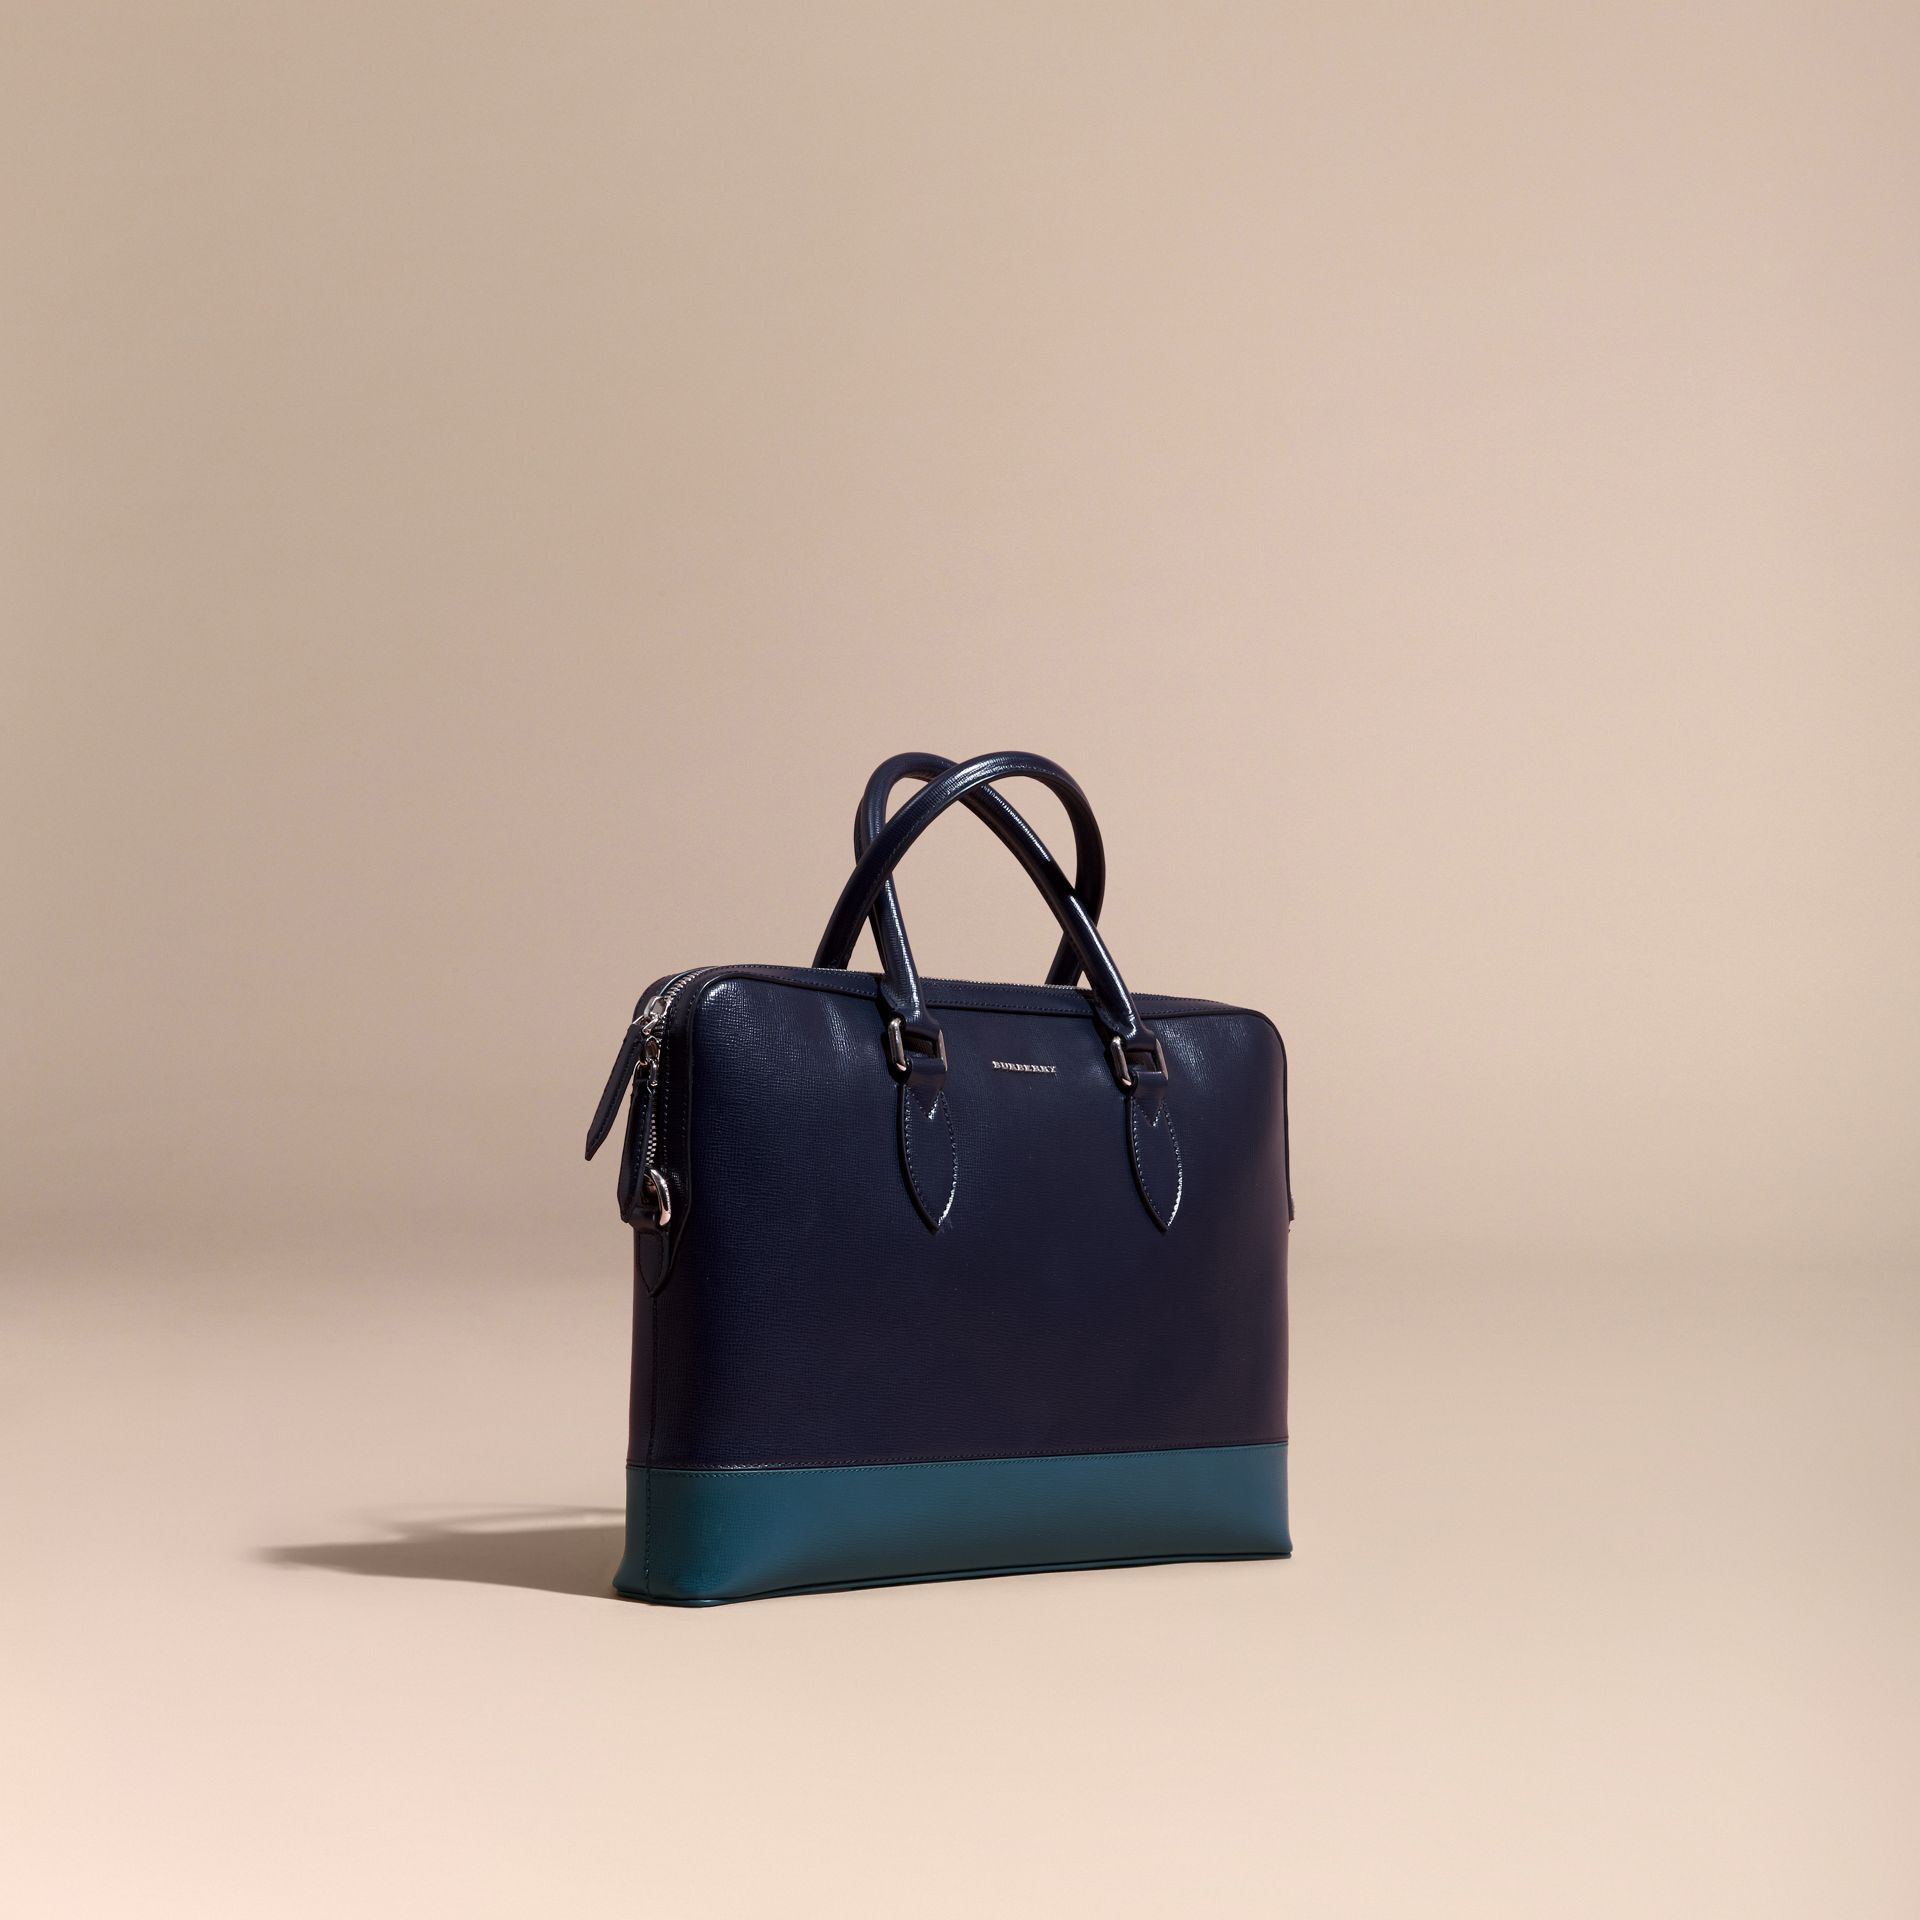 Dark navy/mineral blue The Slim Barrow in Panelled London Leather Dark Navy/mineral Blue - gallery image 1